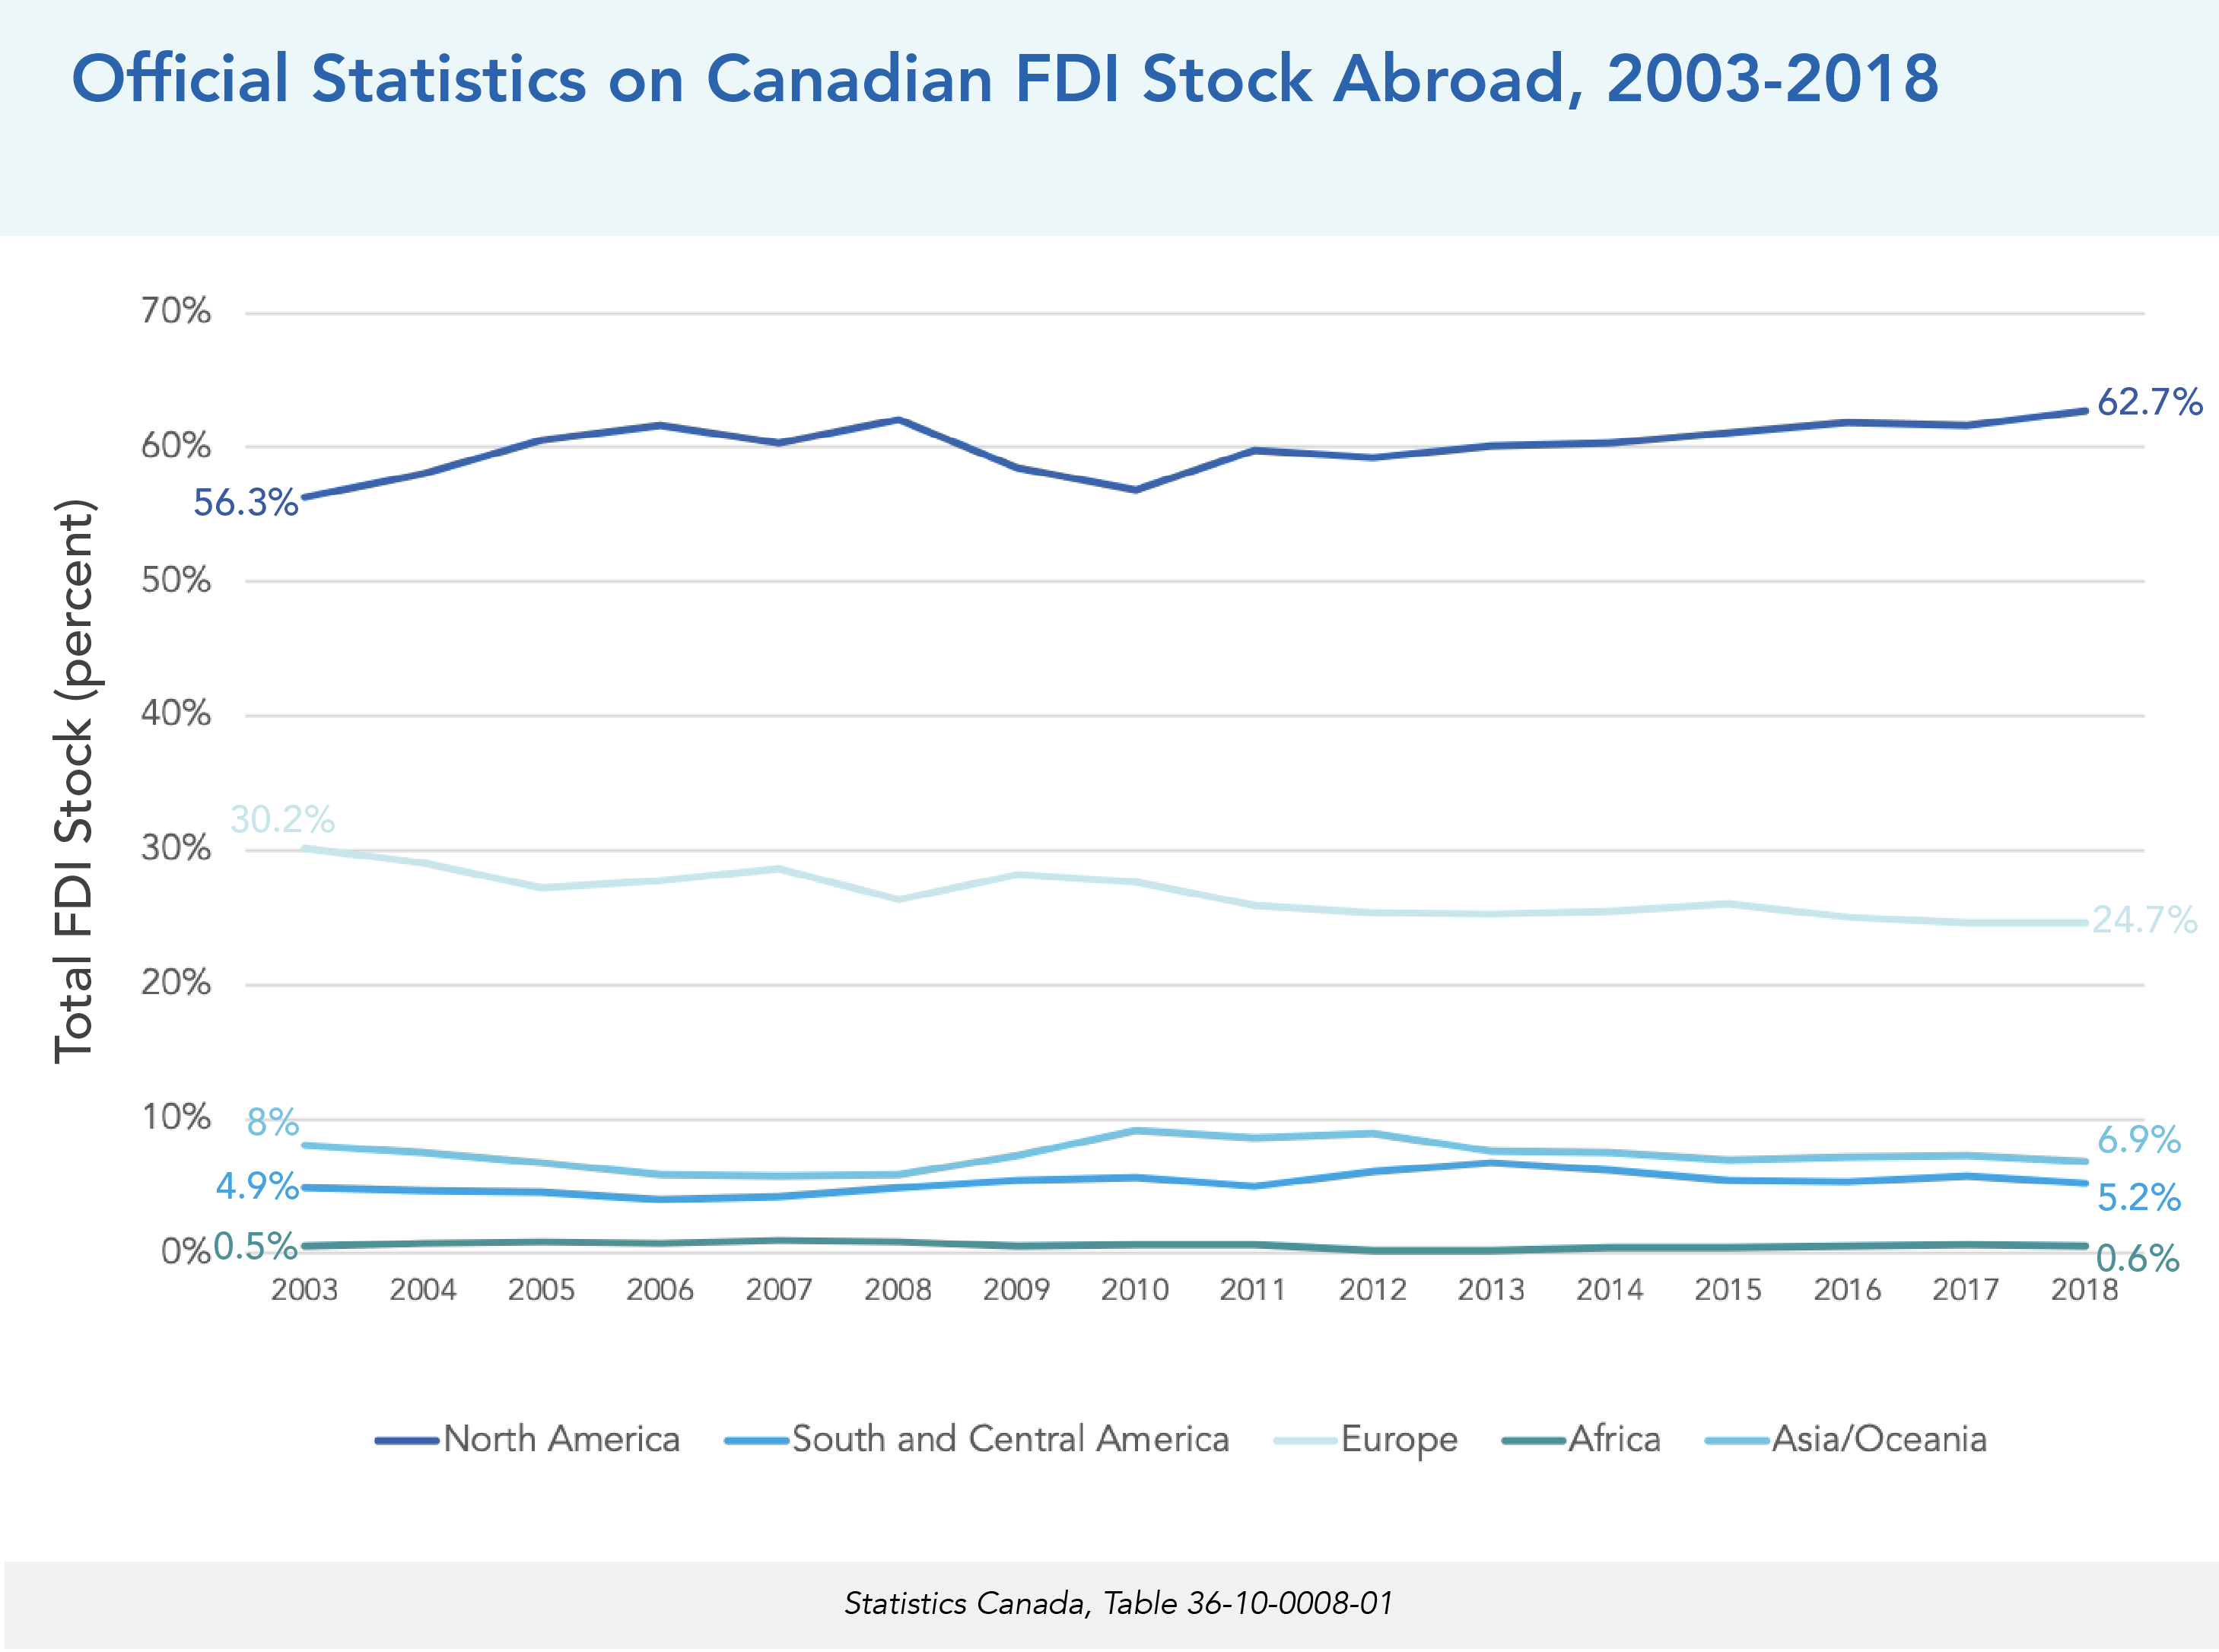 Official Statistics on Canadian FDI Stock Abroad, 2003-2018